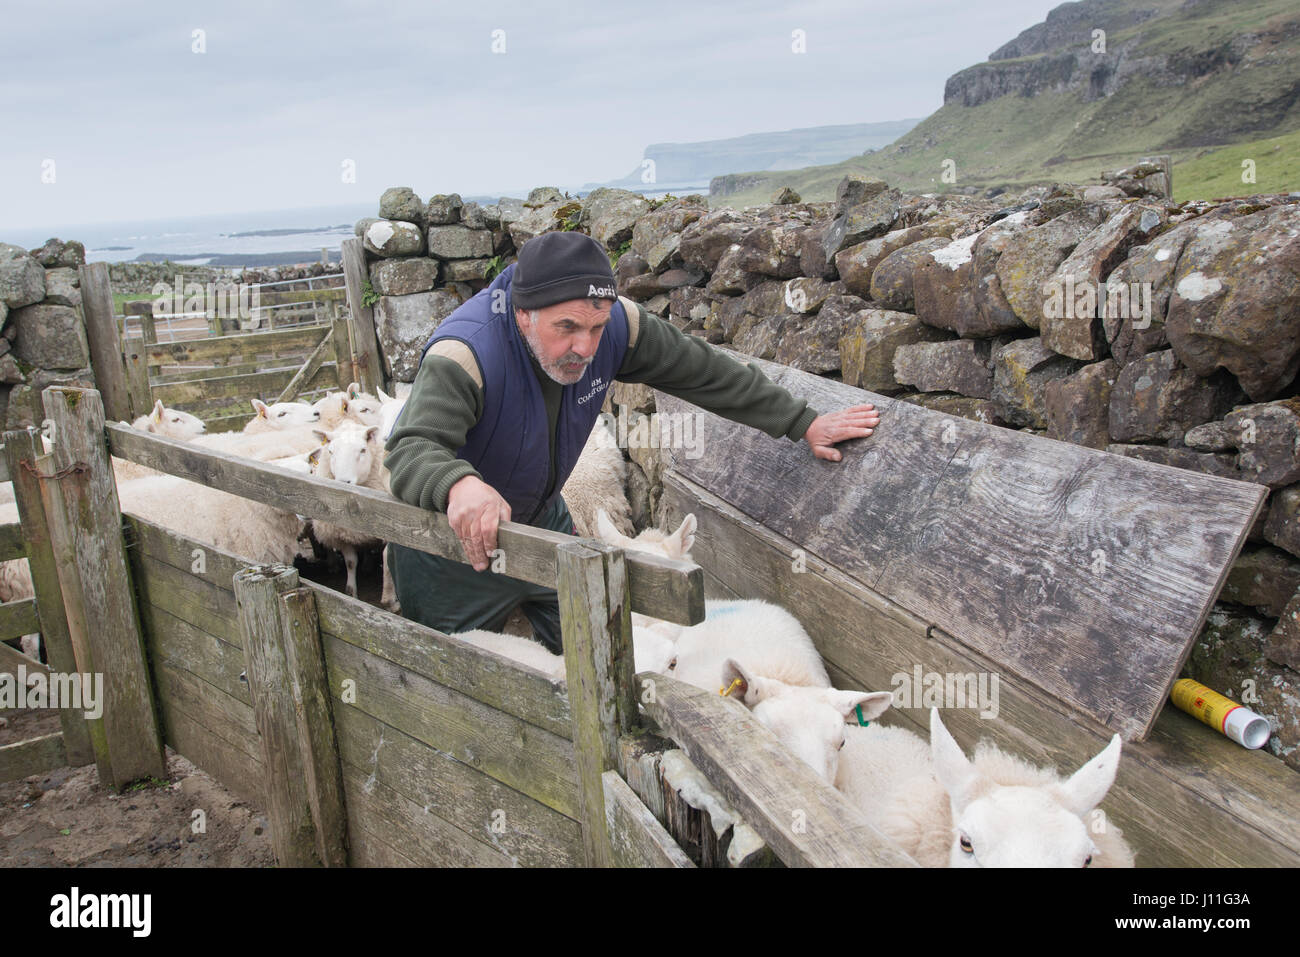 Farmers Murdo Jack checking his sheep for infection on the island of Canna, Inner Hebrides, Scotland - Stock Image